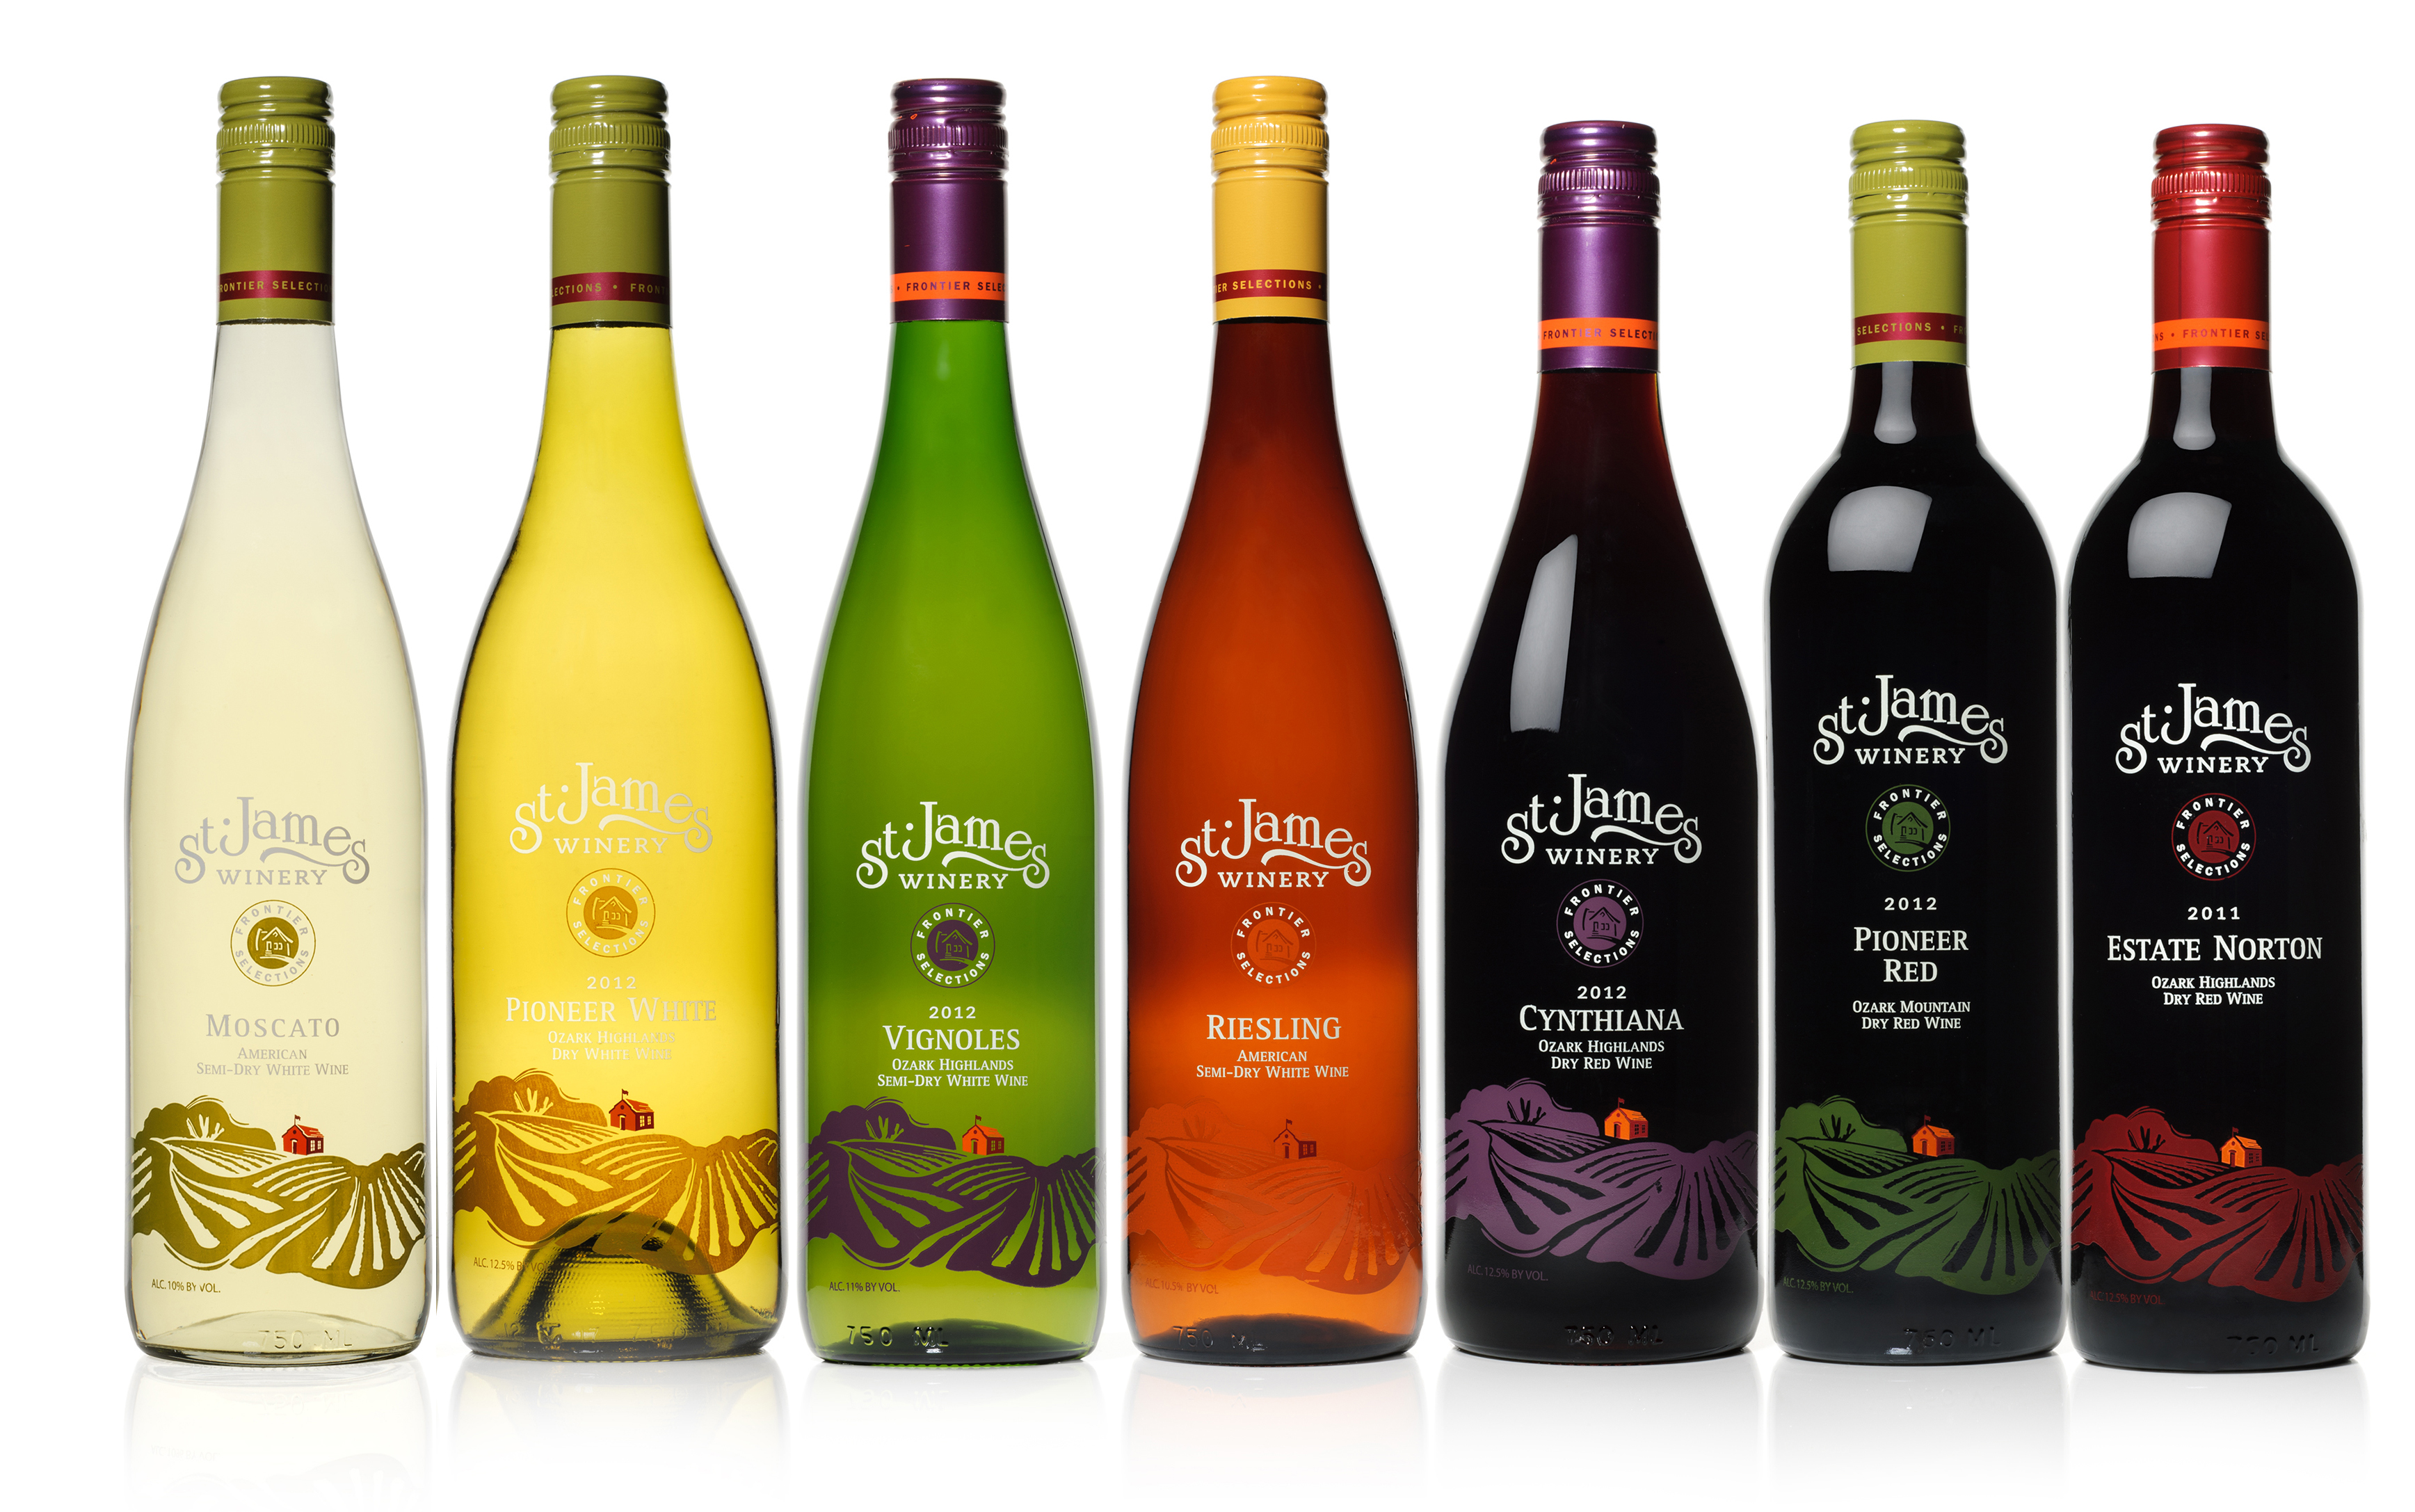 St. James Winery Frontier Selections